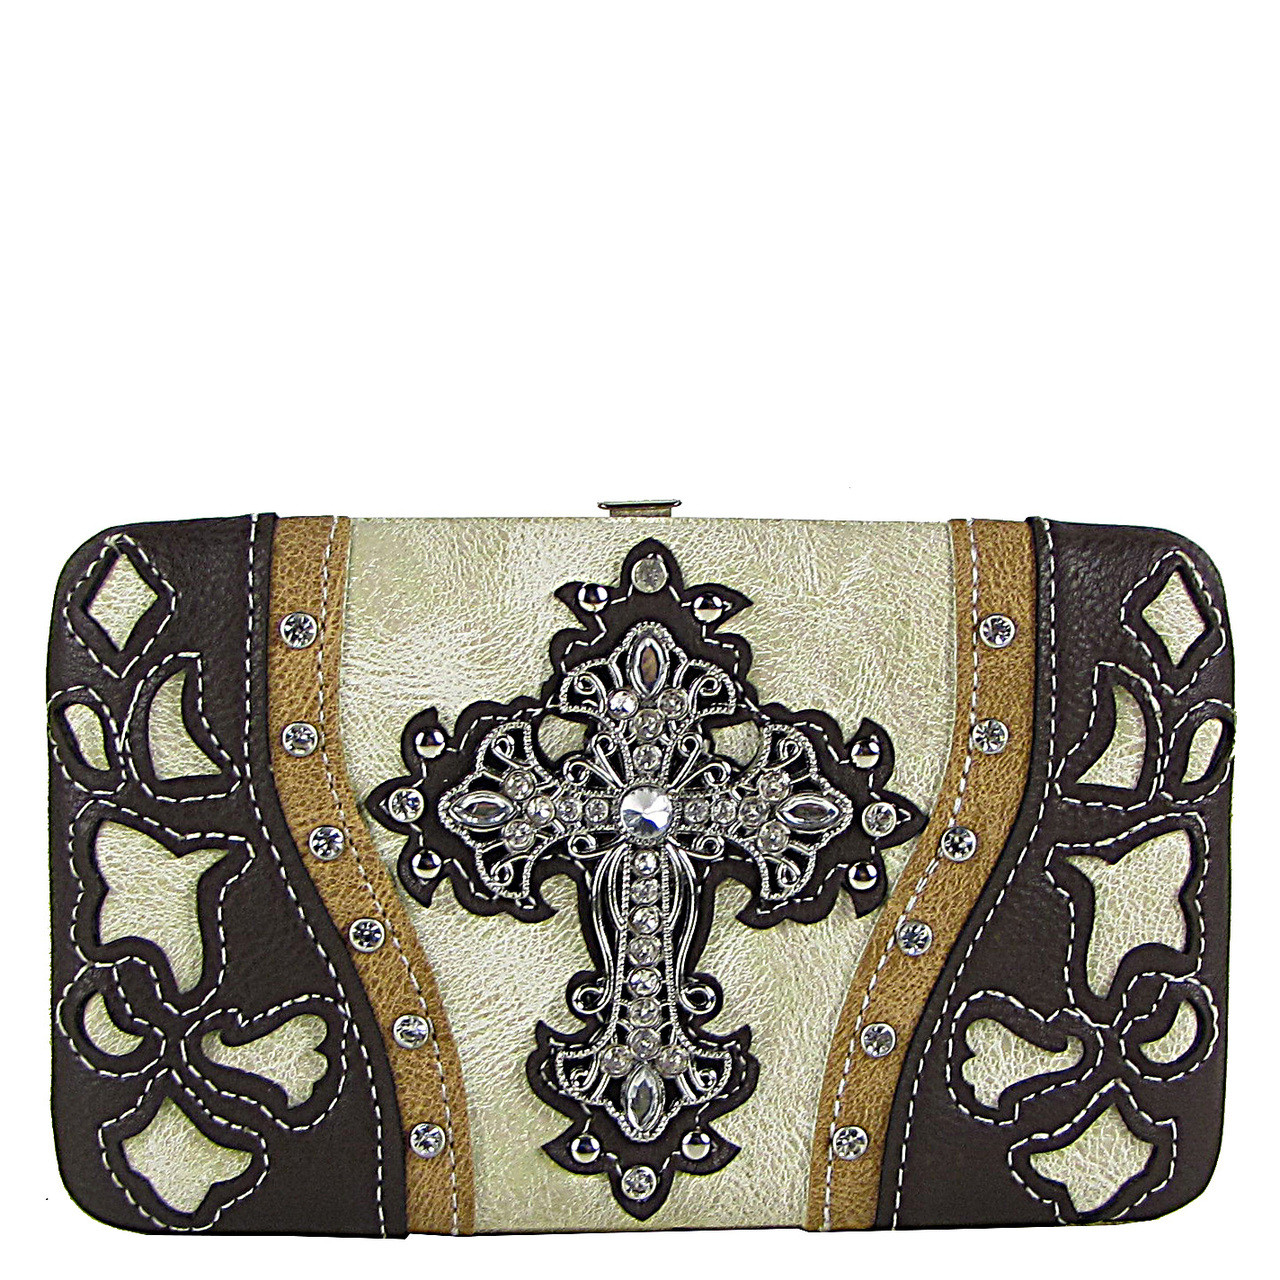 BEIGE WESTERN LASER CUT CROSS DESIGN FLAT THICK WALLET FW2-0401BEI